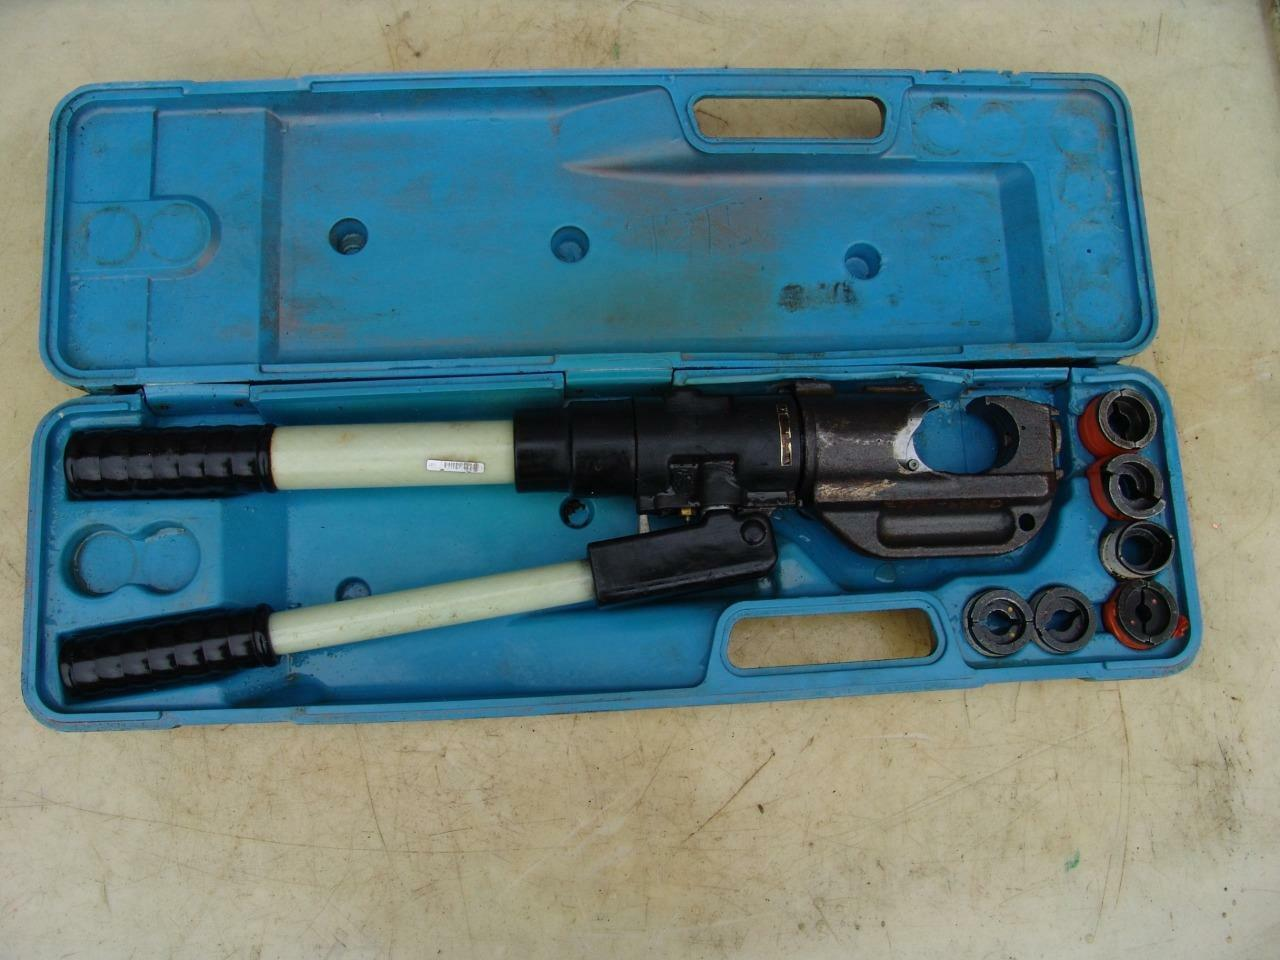 THOMAS & BETTS Tbm14M Hydraulic Crimper 14 Tons With Dies Works ...